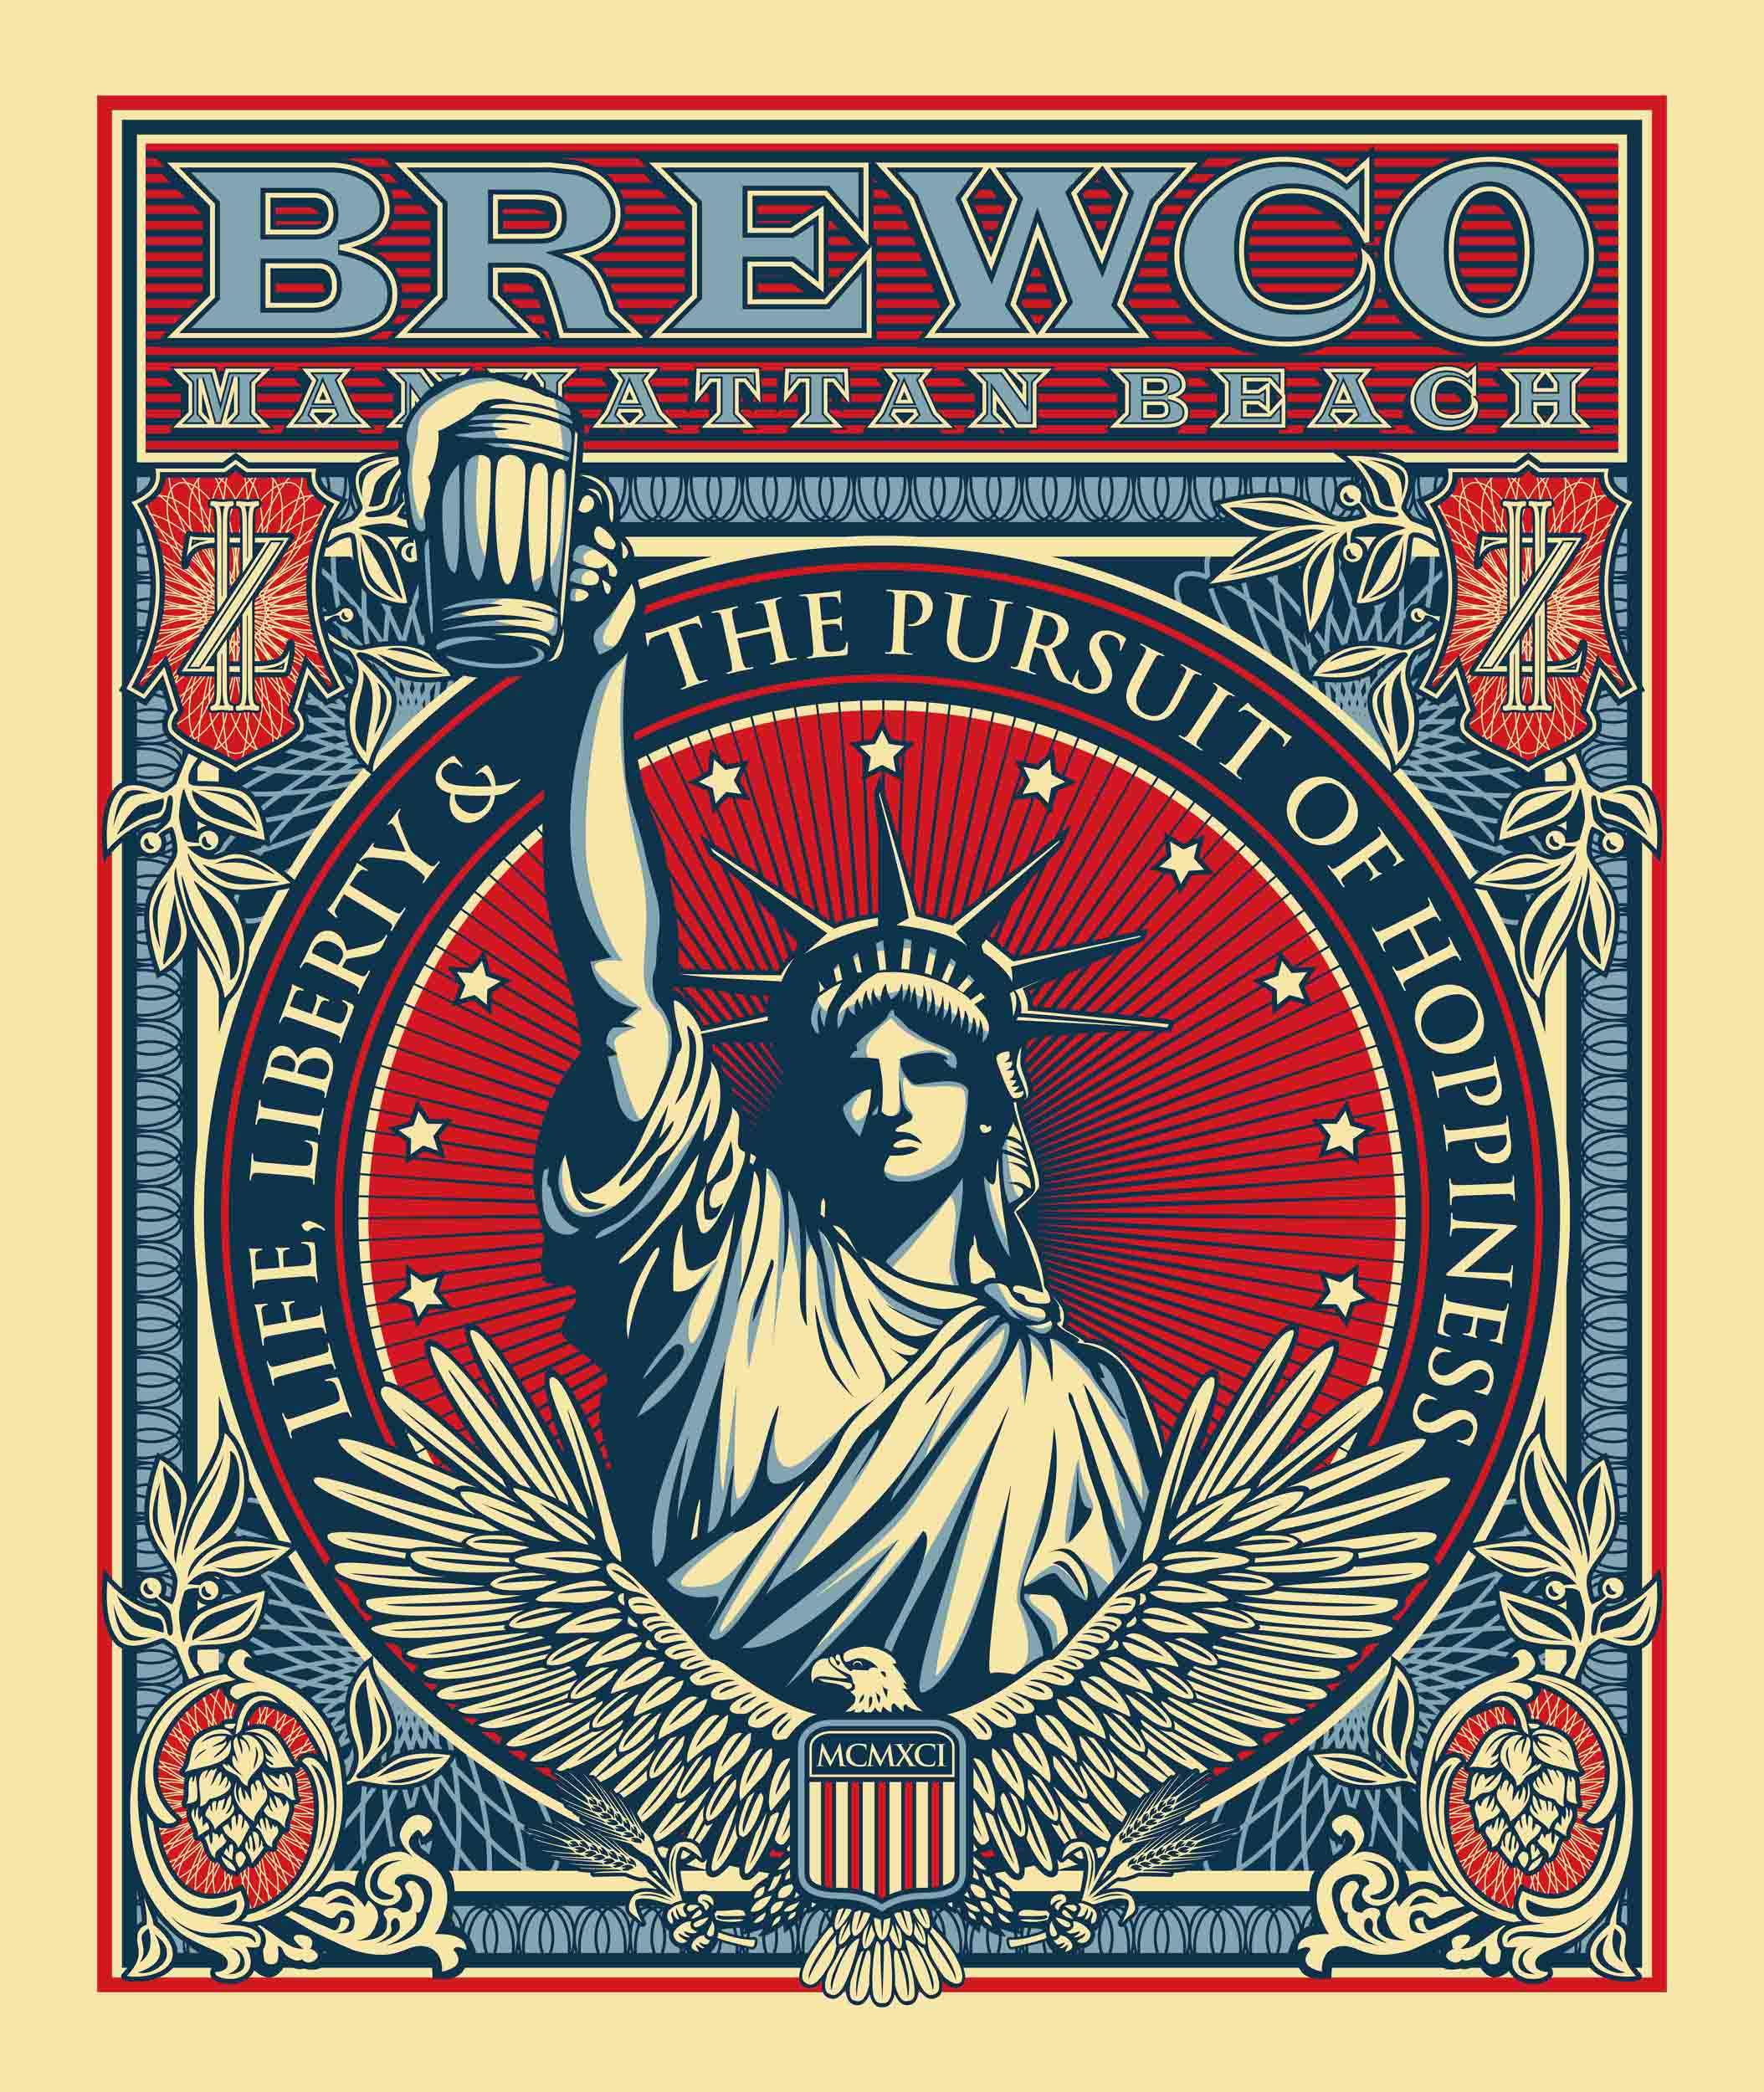 Brewco Pursuit of Hoppiness poster.